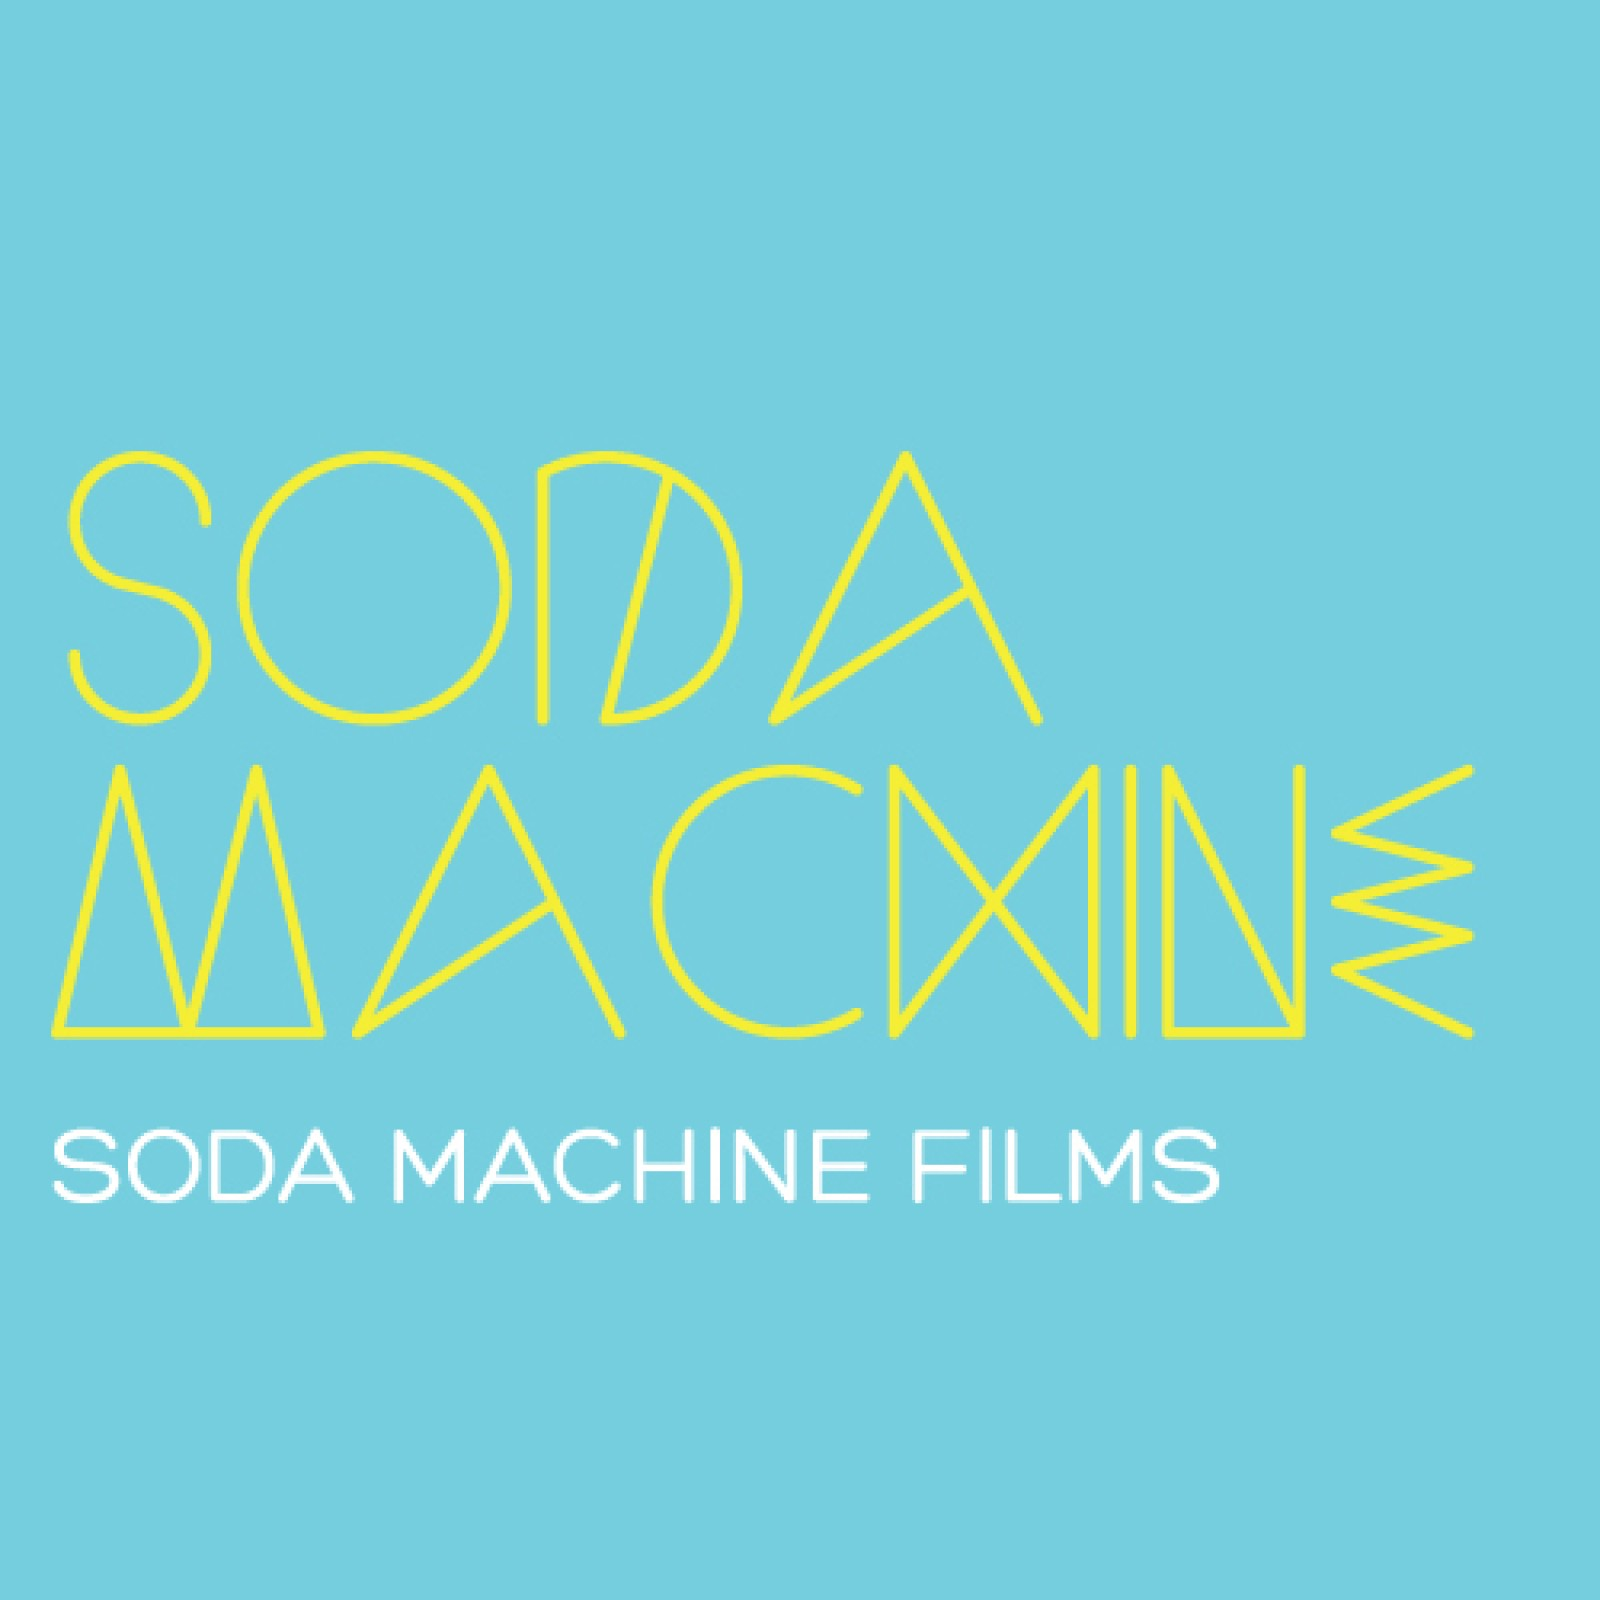 soda machine films